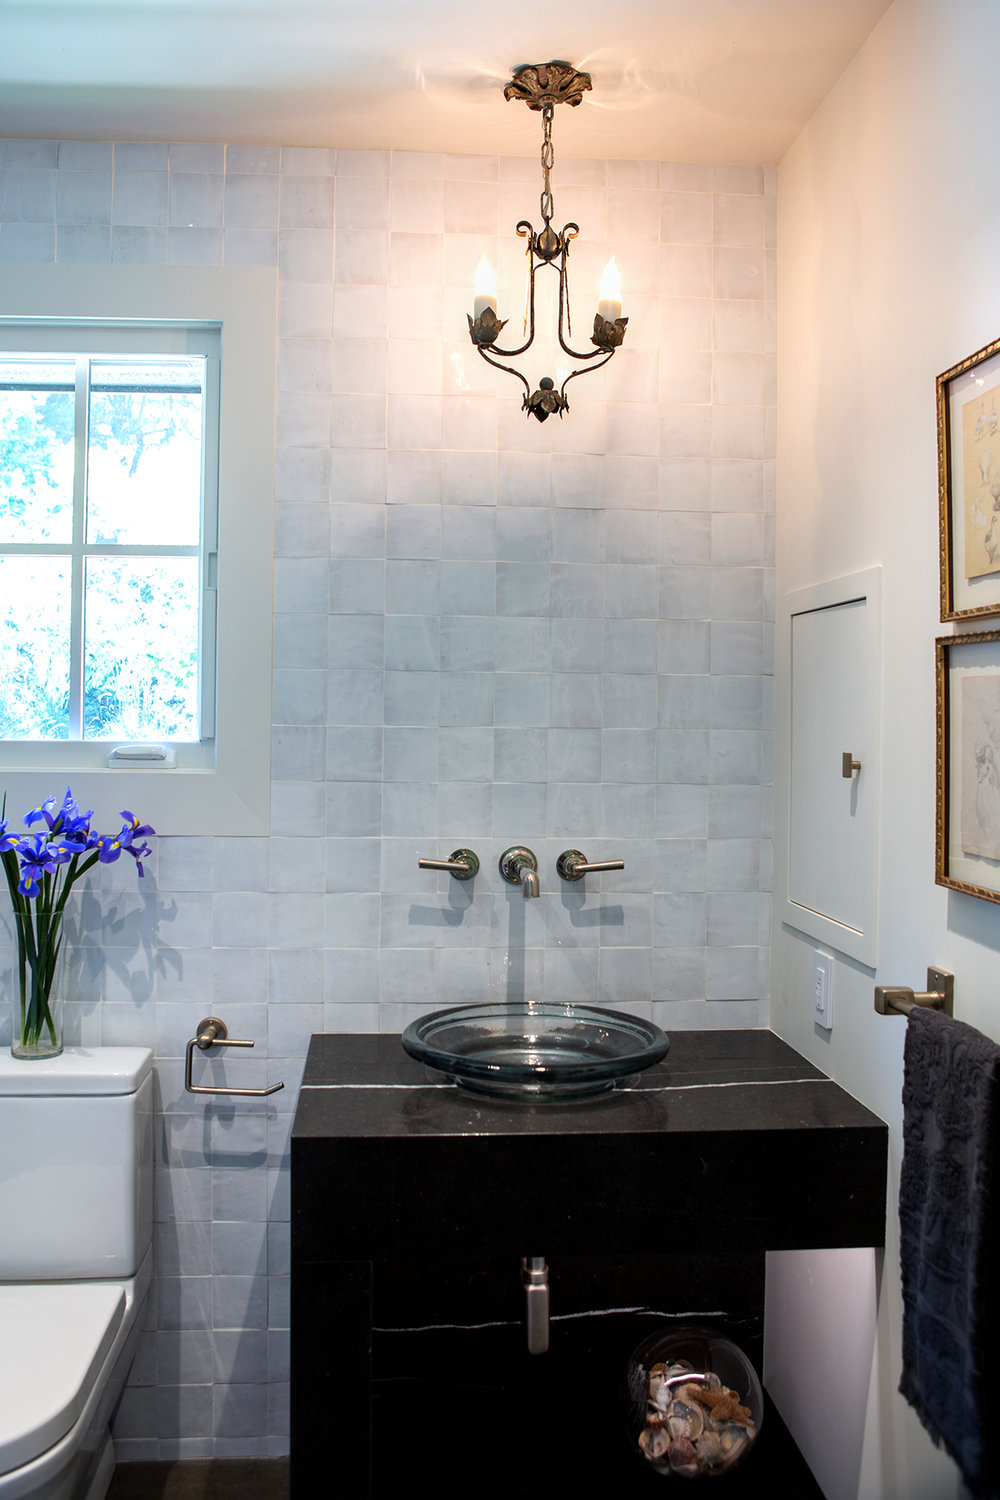 small bathroom with glass sink.jpg